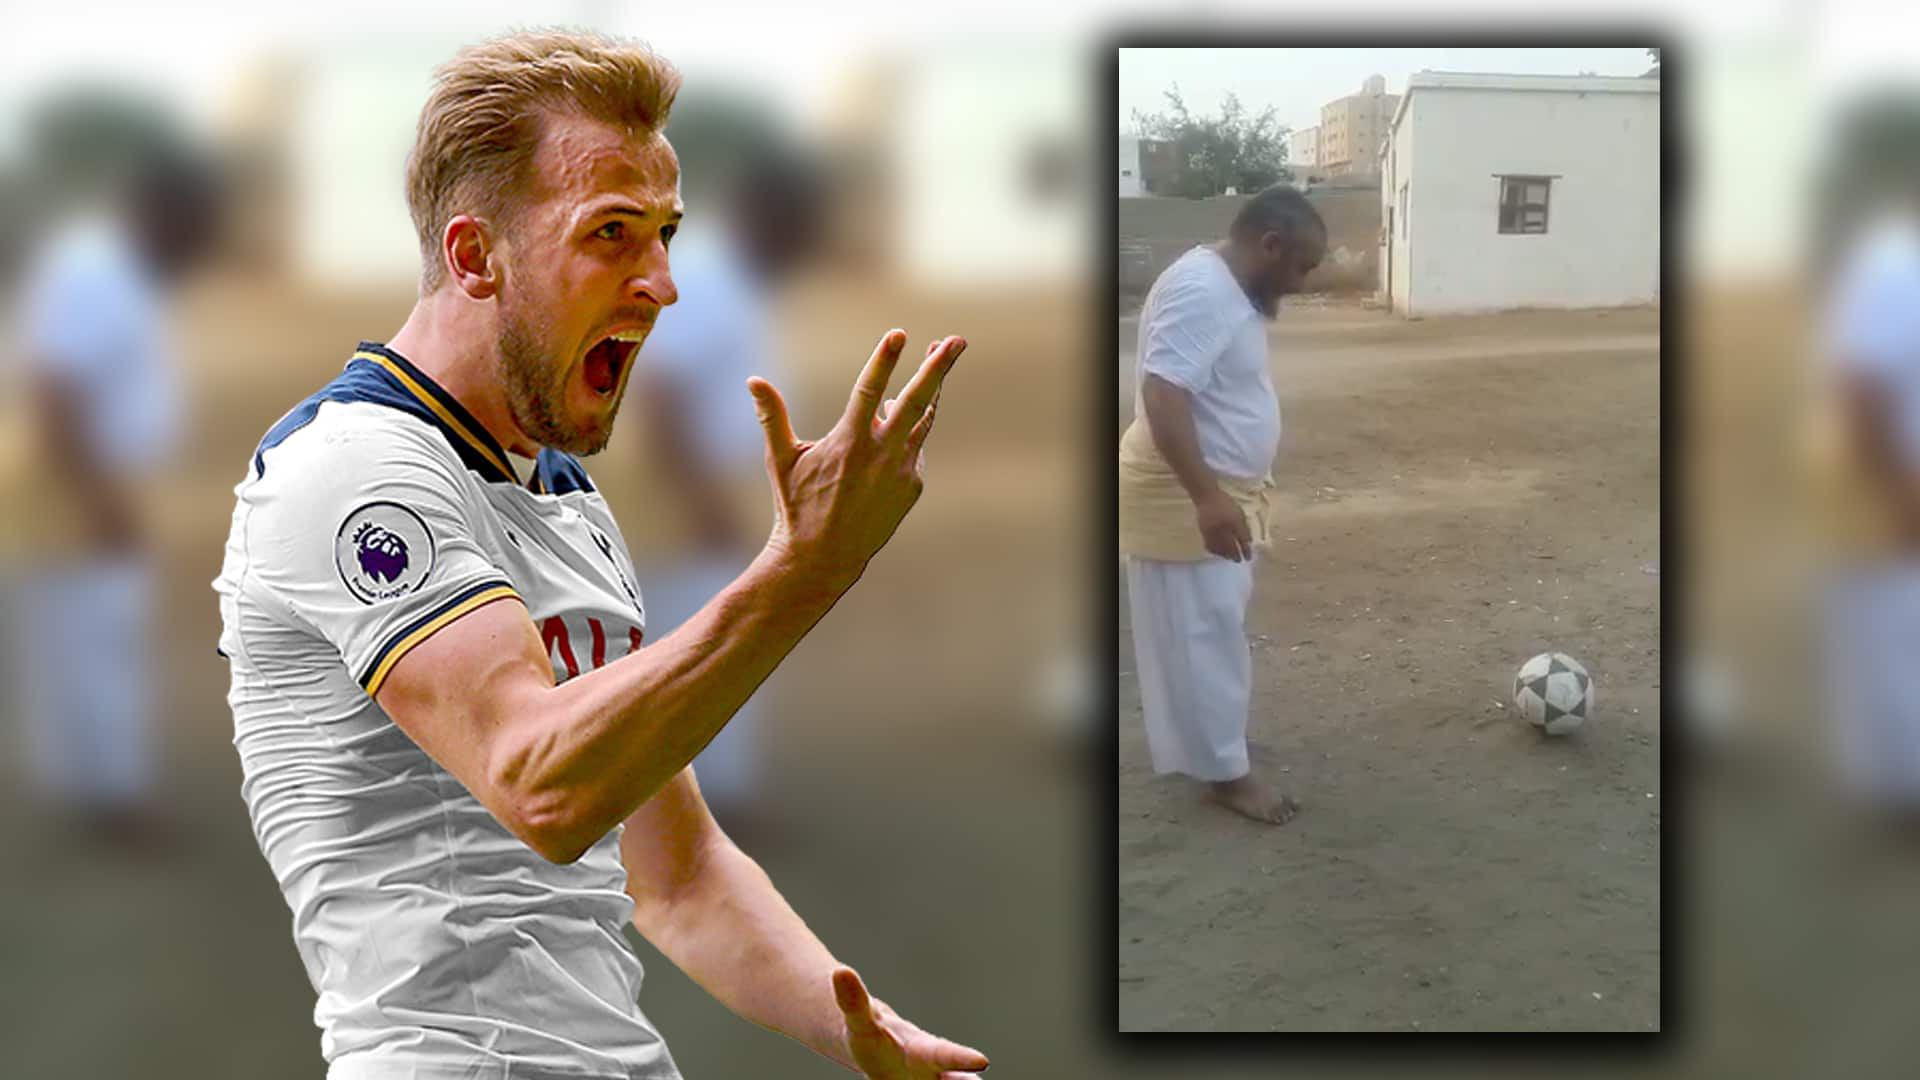 The Harry Kane you haven't seen. Video goes viral on social media